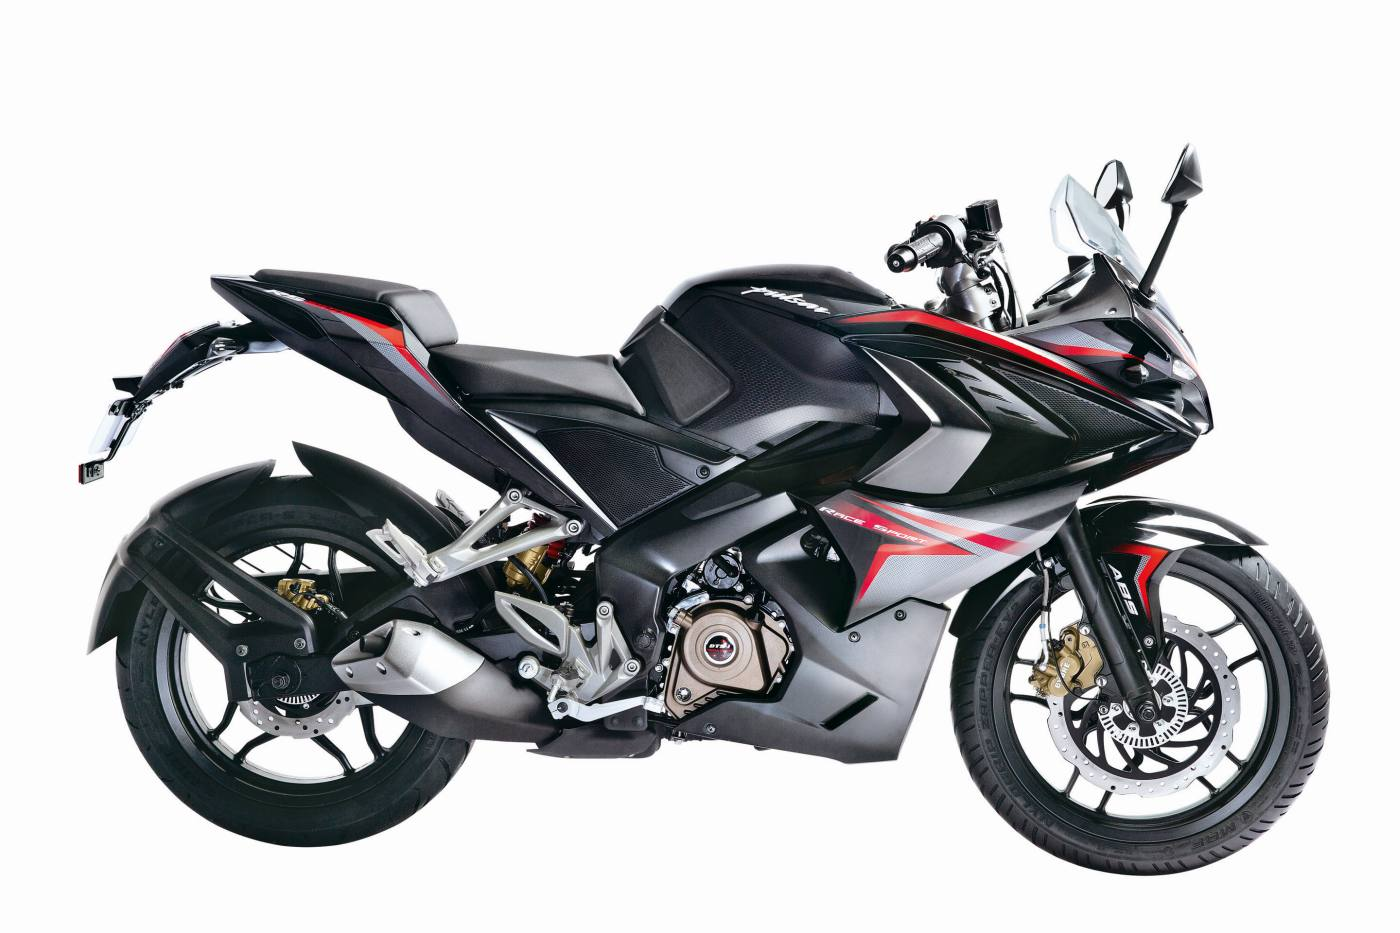 The Bajaj Pulsar Rs 200 In Demon Black Colours Is Officially Here on benelli 250 white